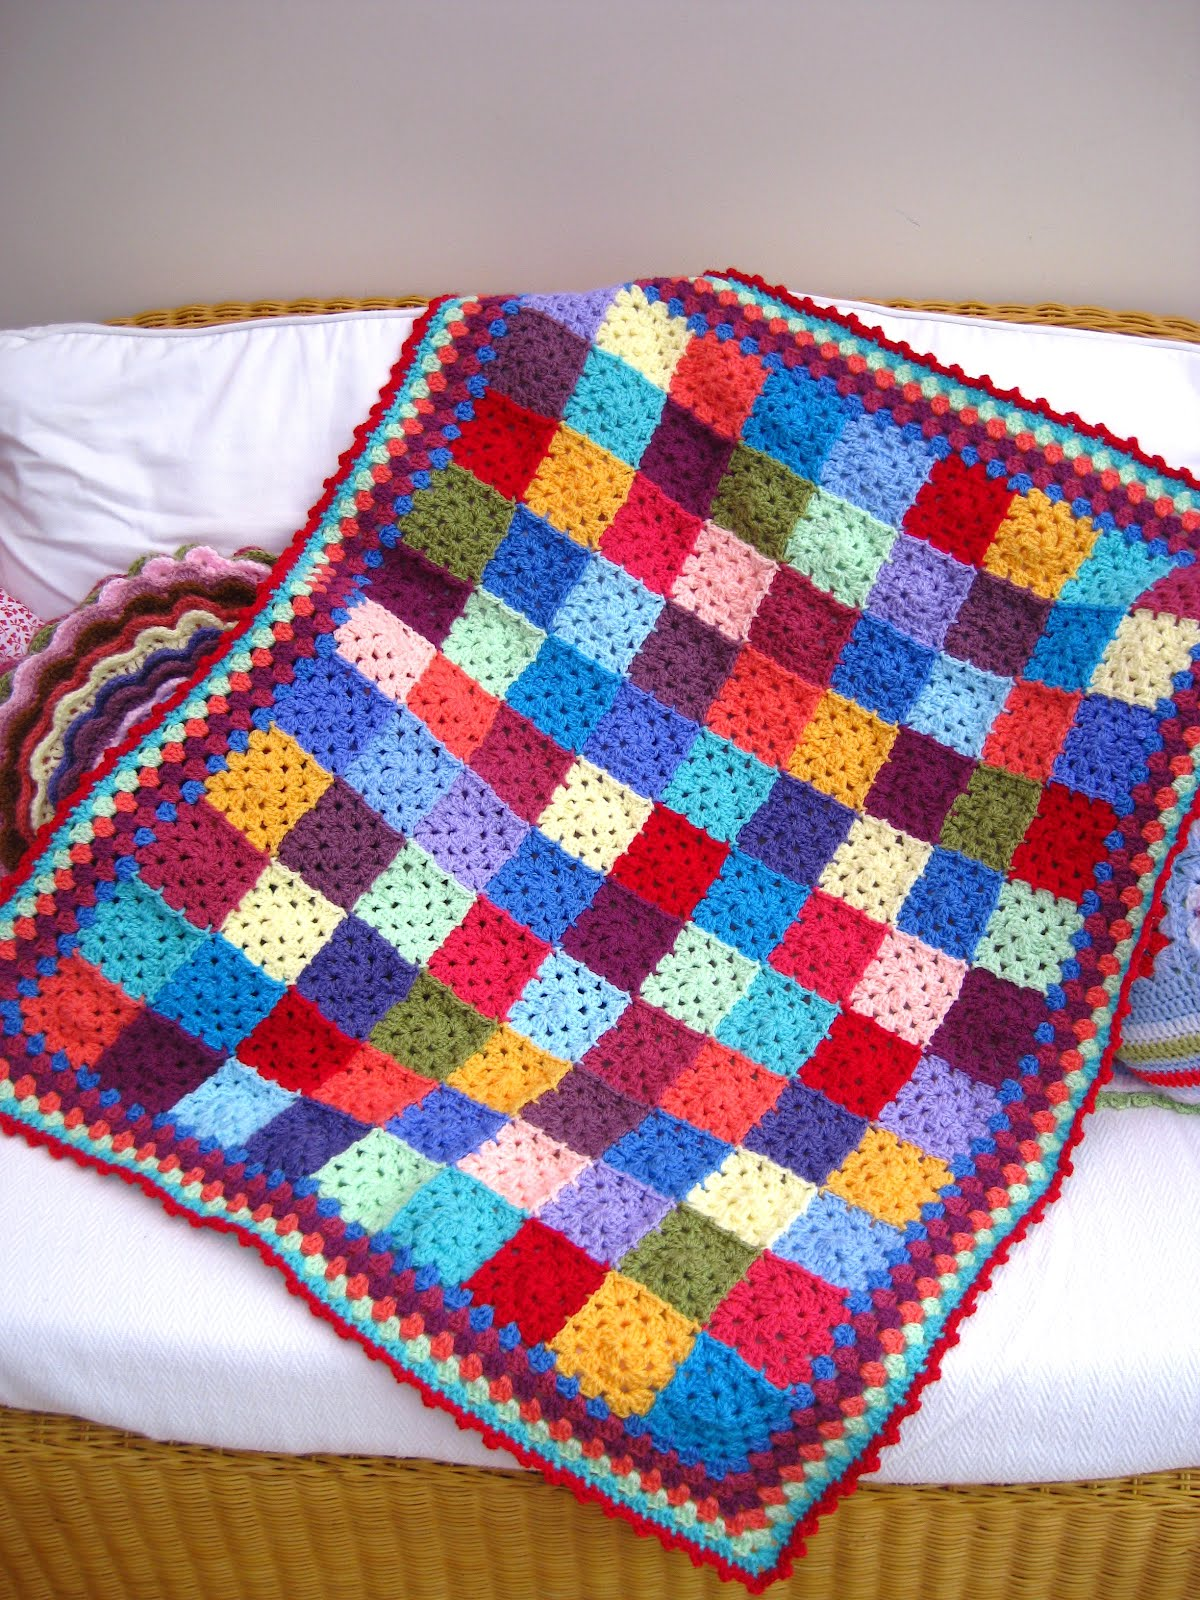 Colorful Blanket